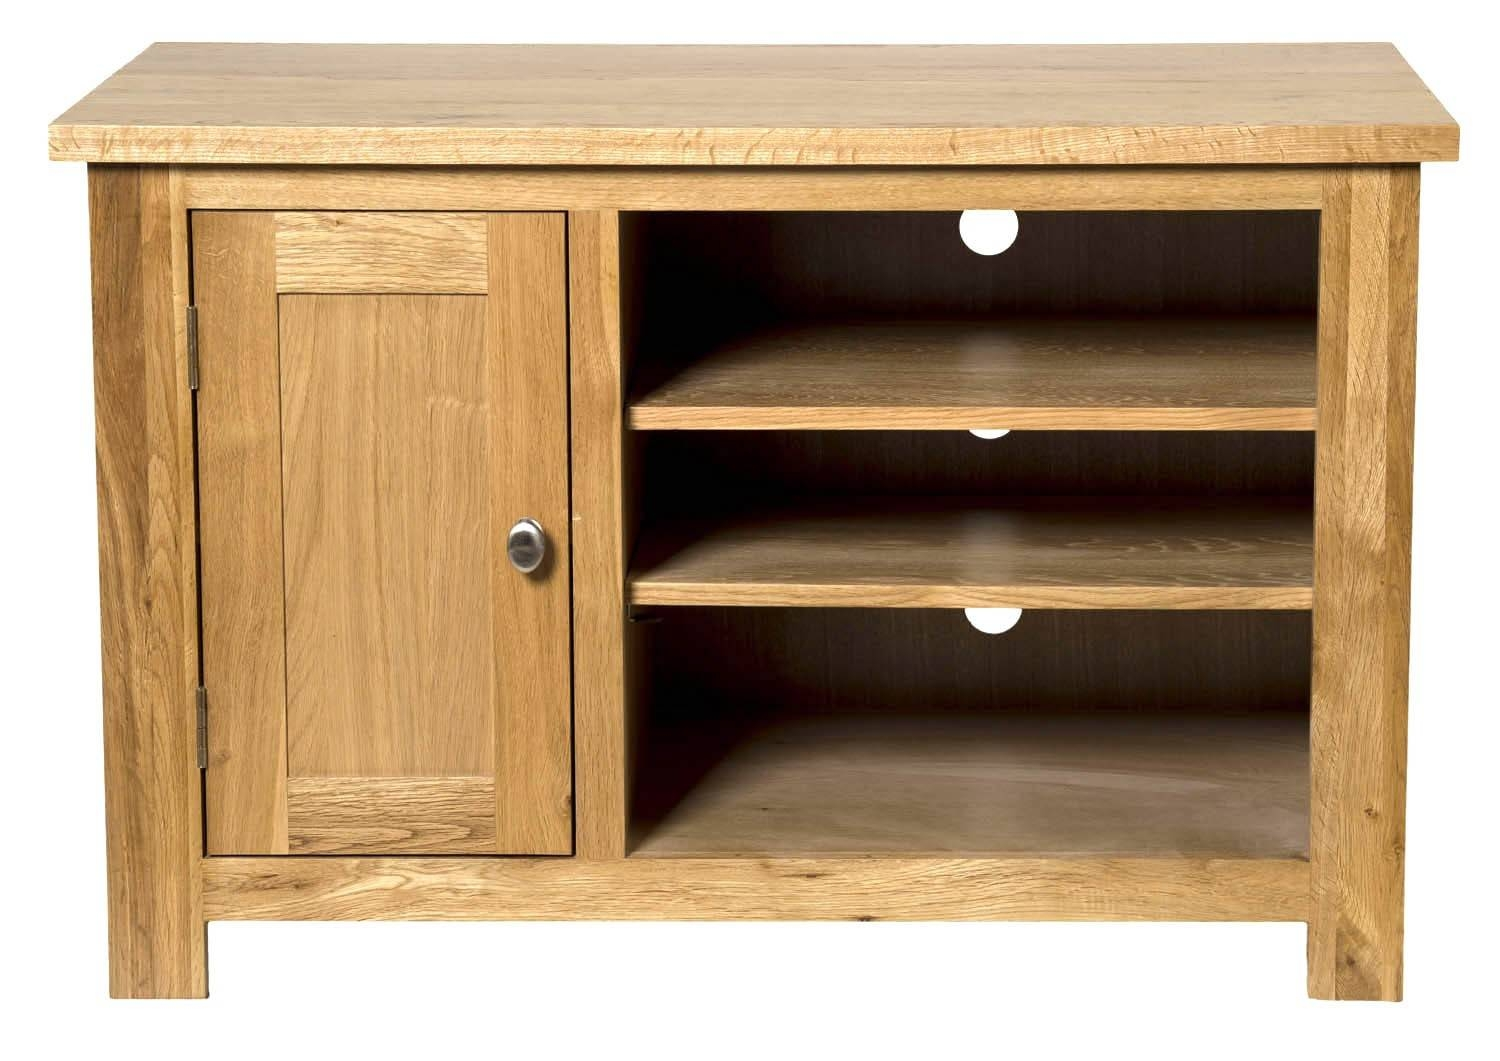 Waverly Oak Small Compact Tv Stand With Cabinet Storage | Hallowood intended for Light Oak Tv Cabinets (Image 14 of 15)